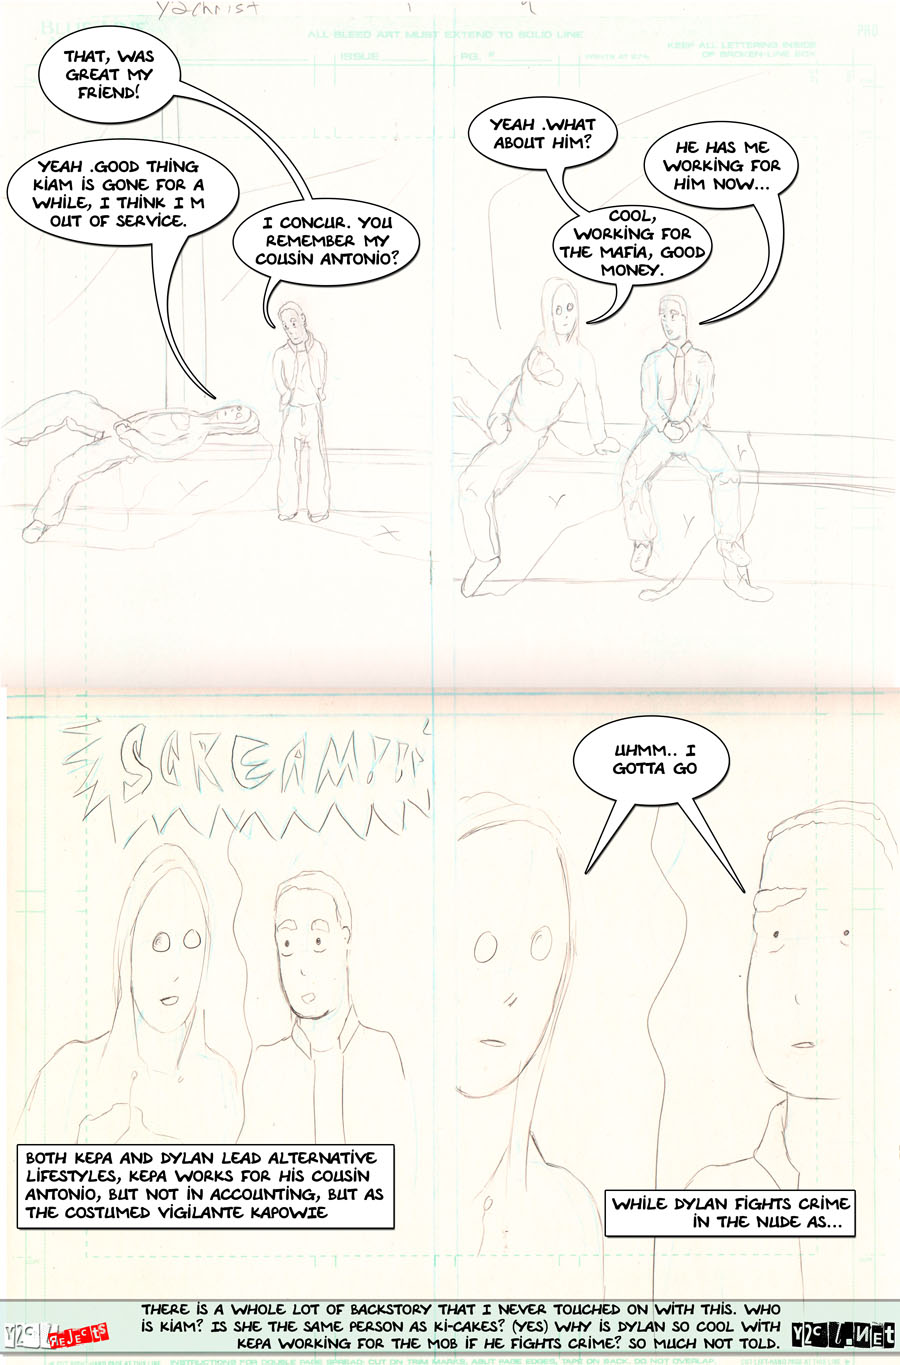 y2christ ComX Page 9 – Aftermath Talk